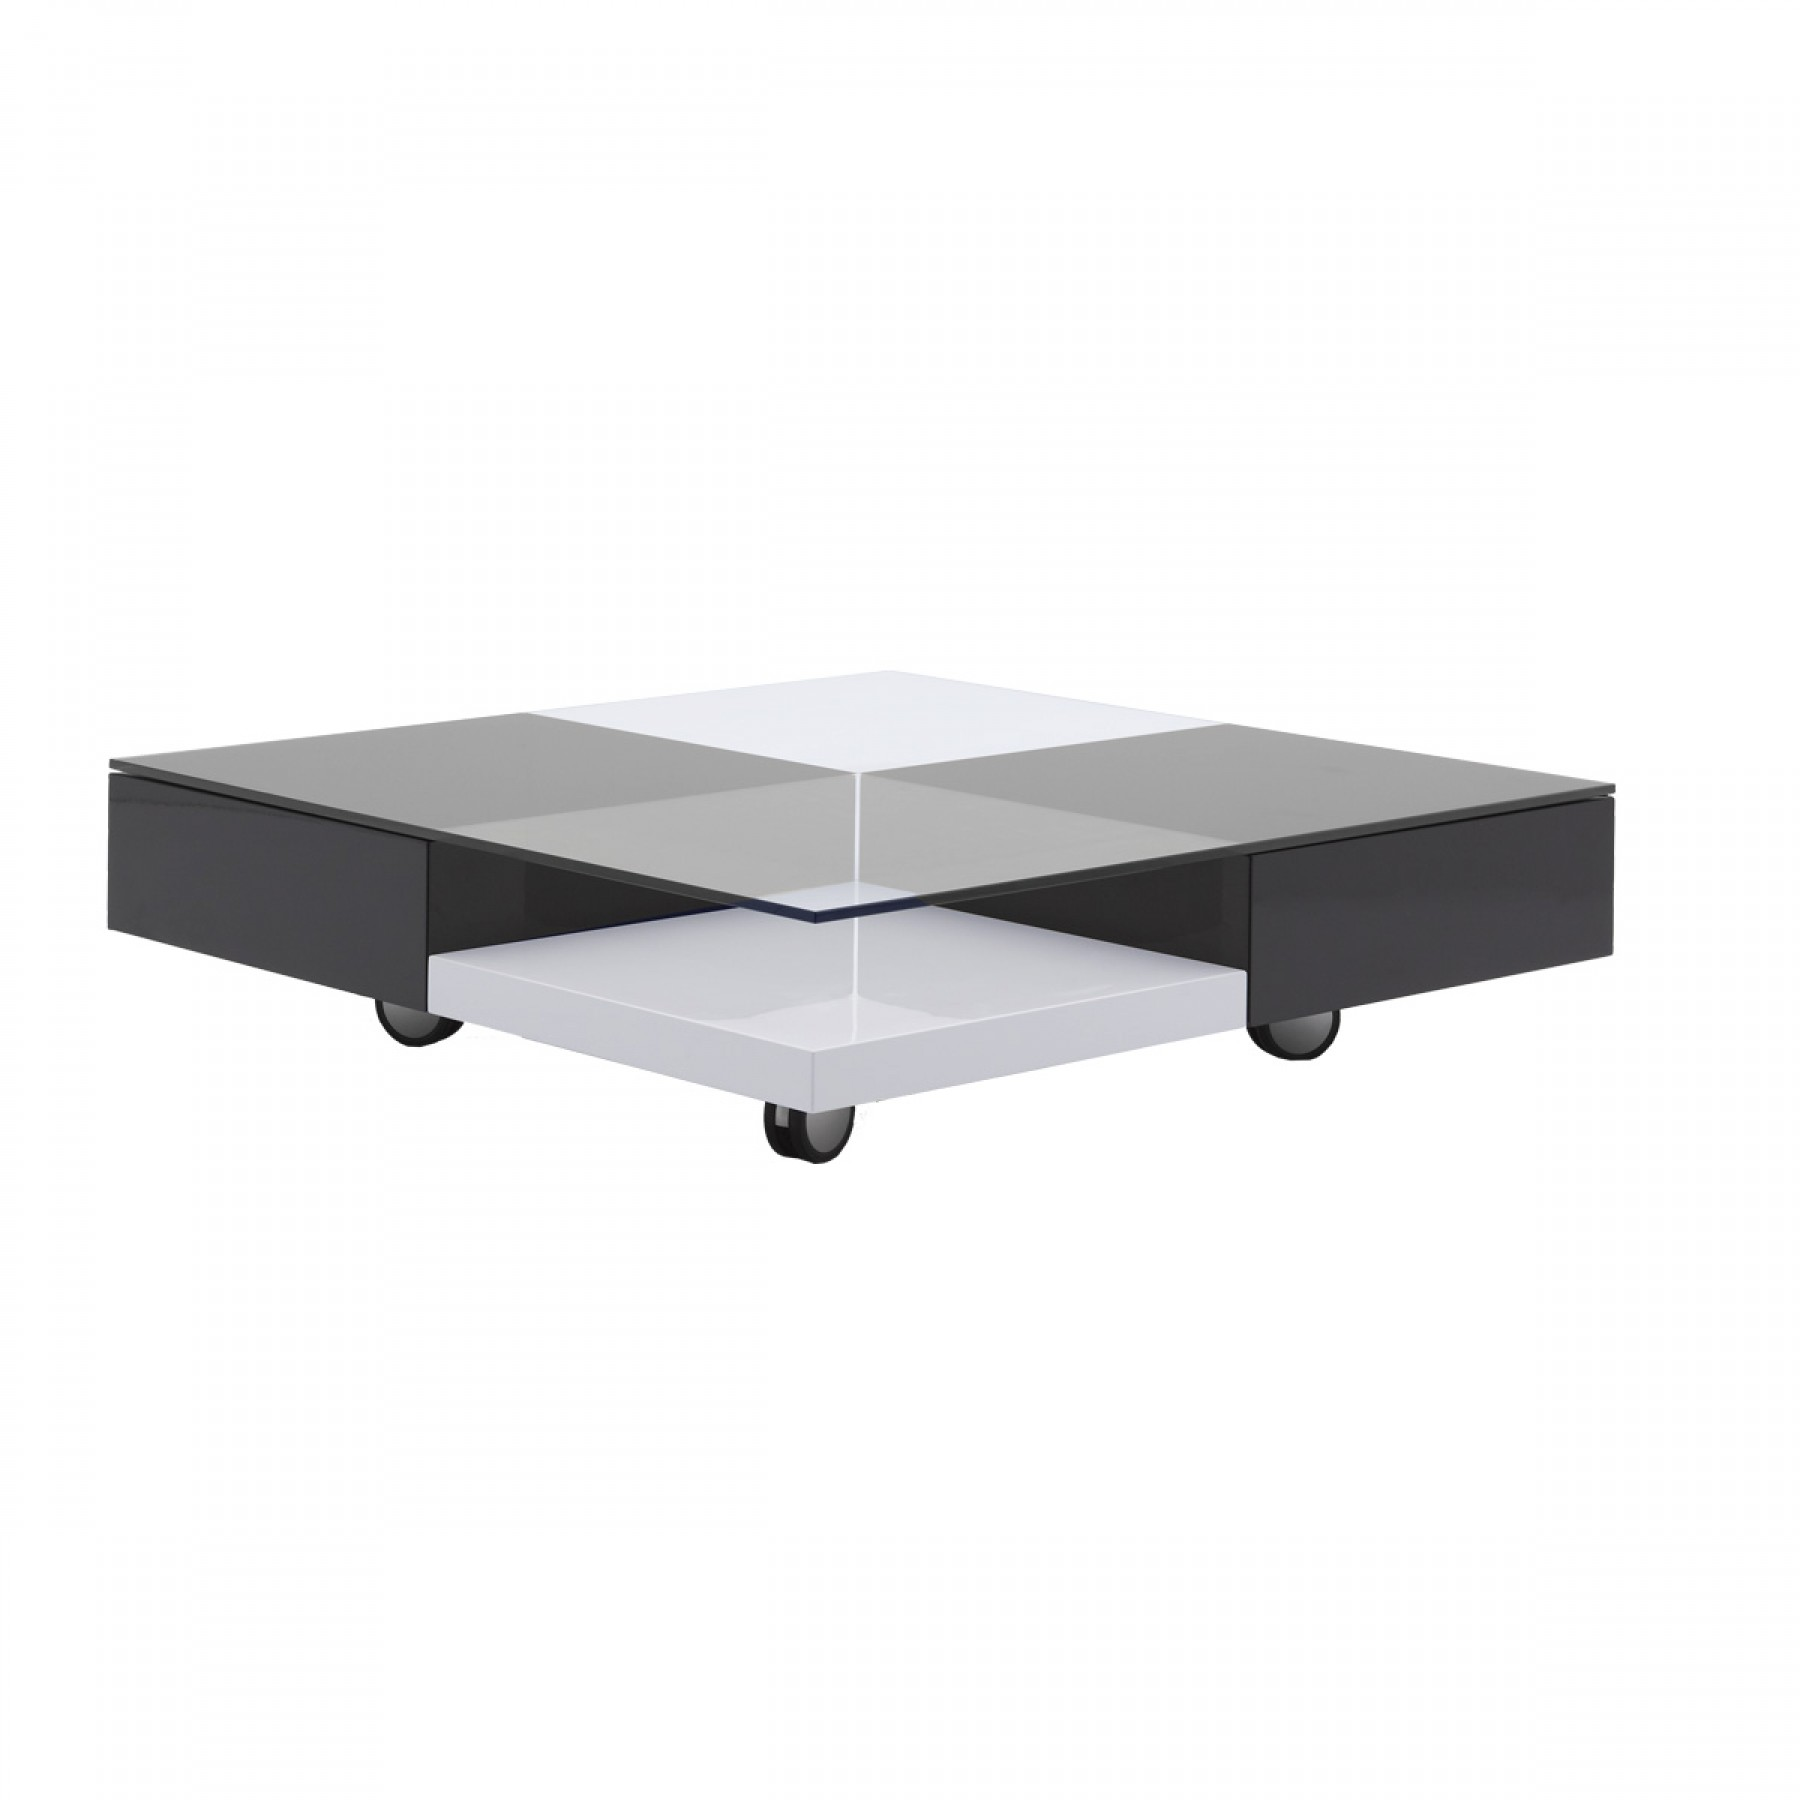 ... Domino Grey White Square Coffee Table